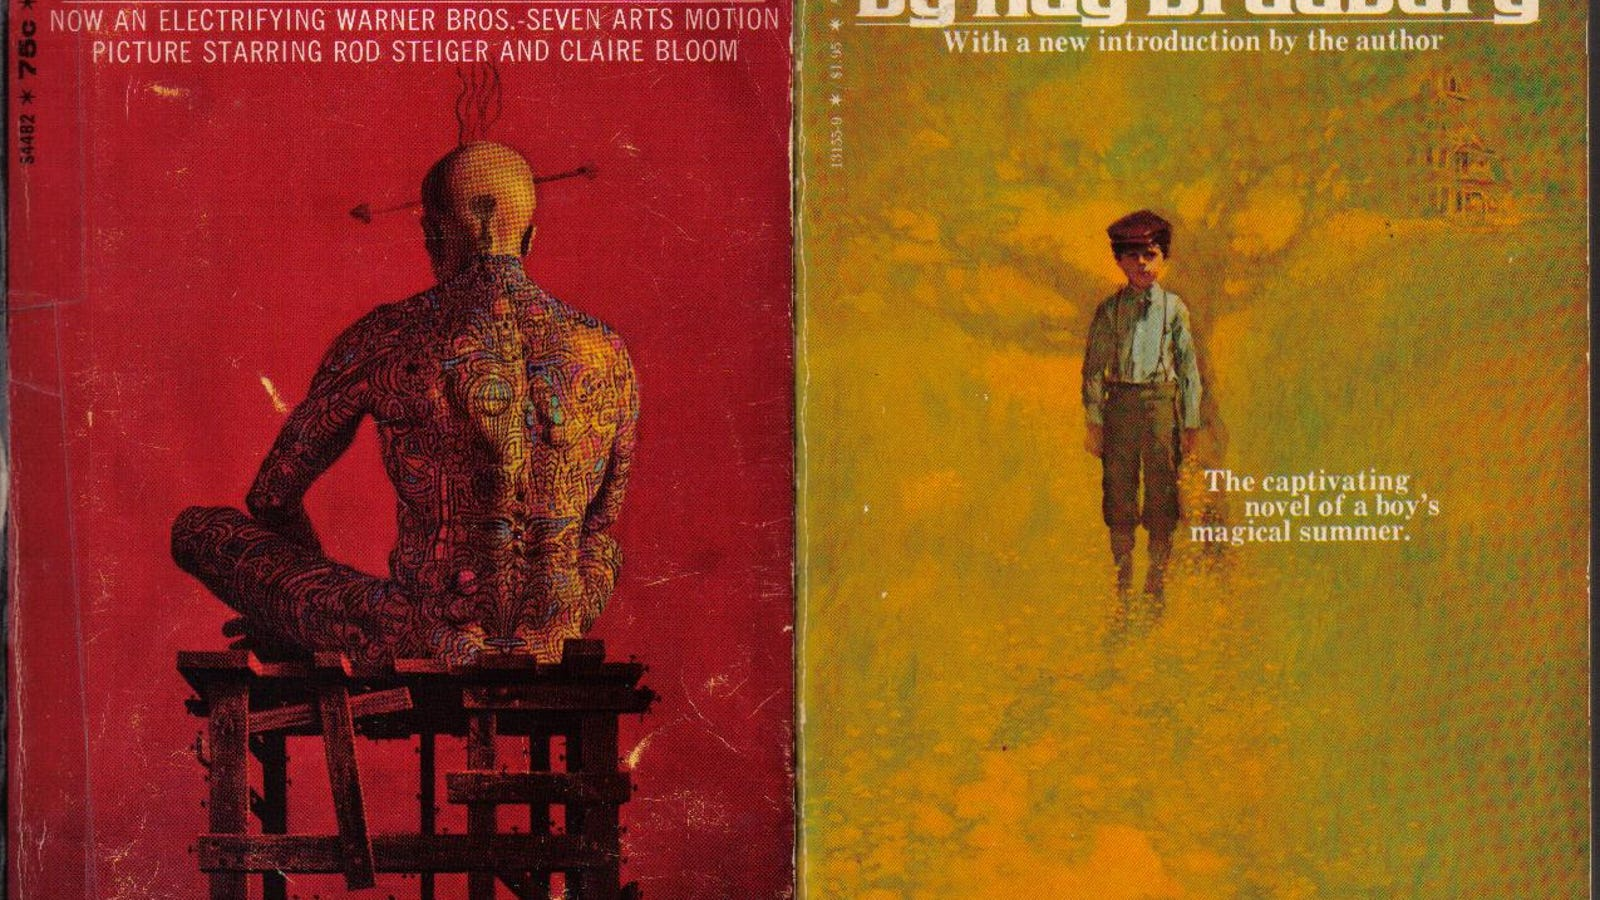 Now At Last Ray Bradbury S Novels Are Out As E Books